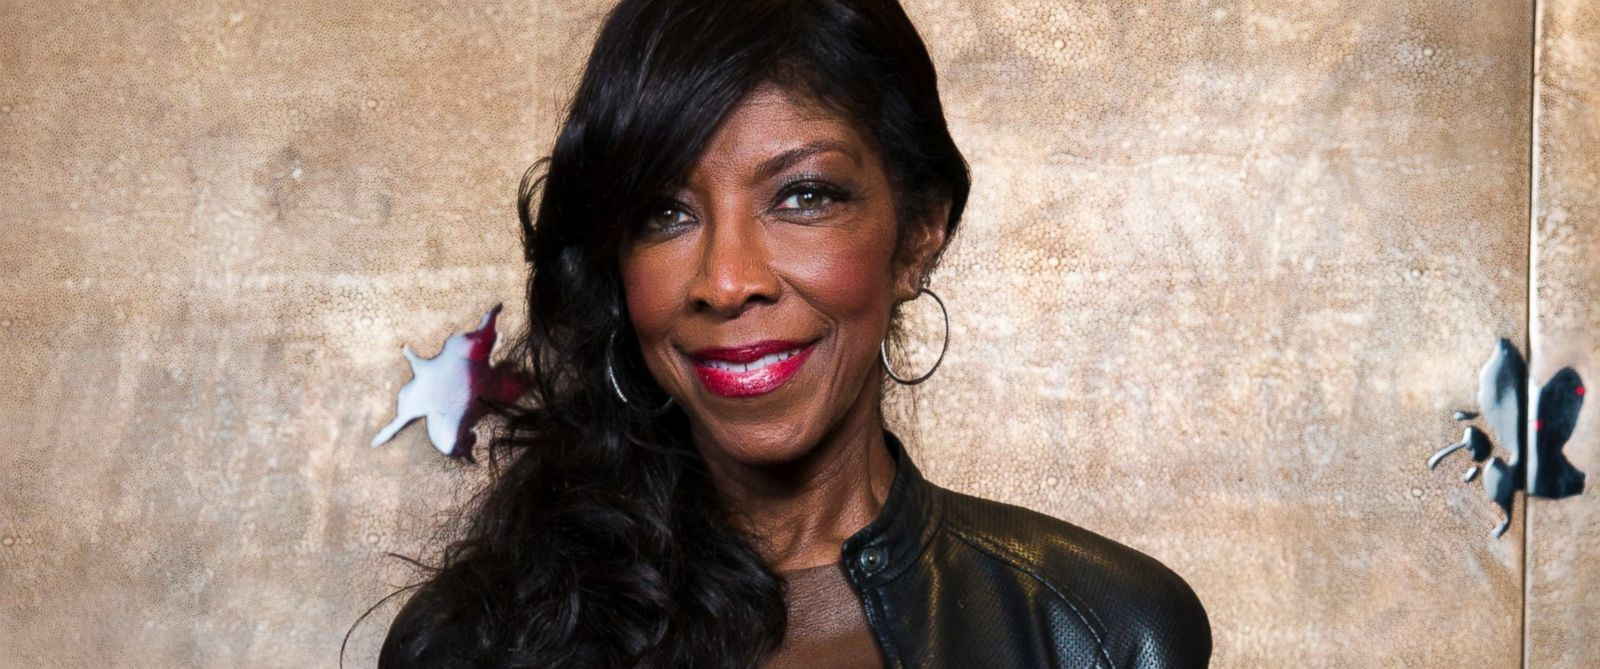 natalie cole love перевод